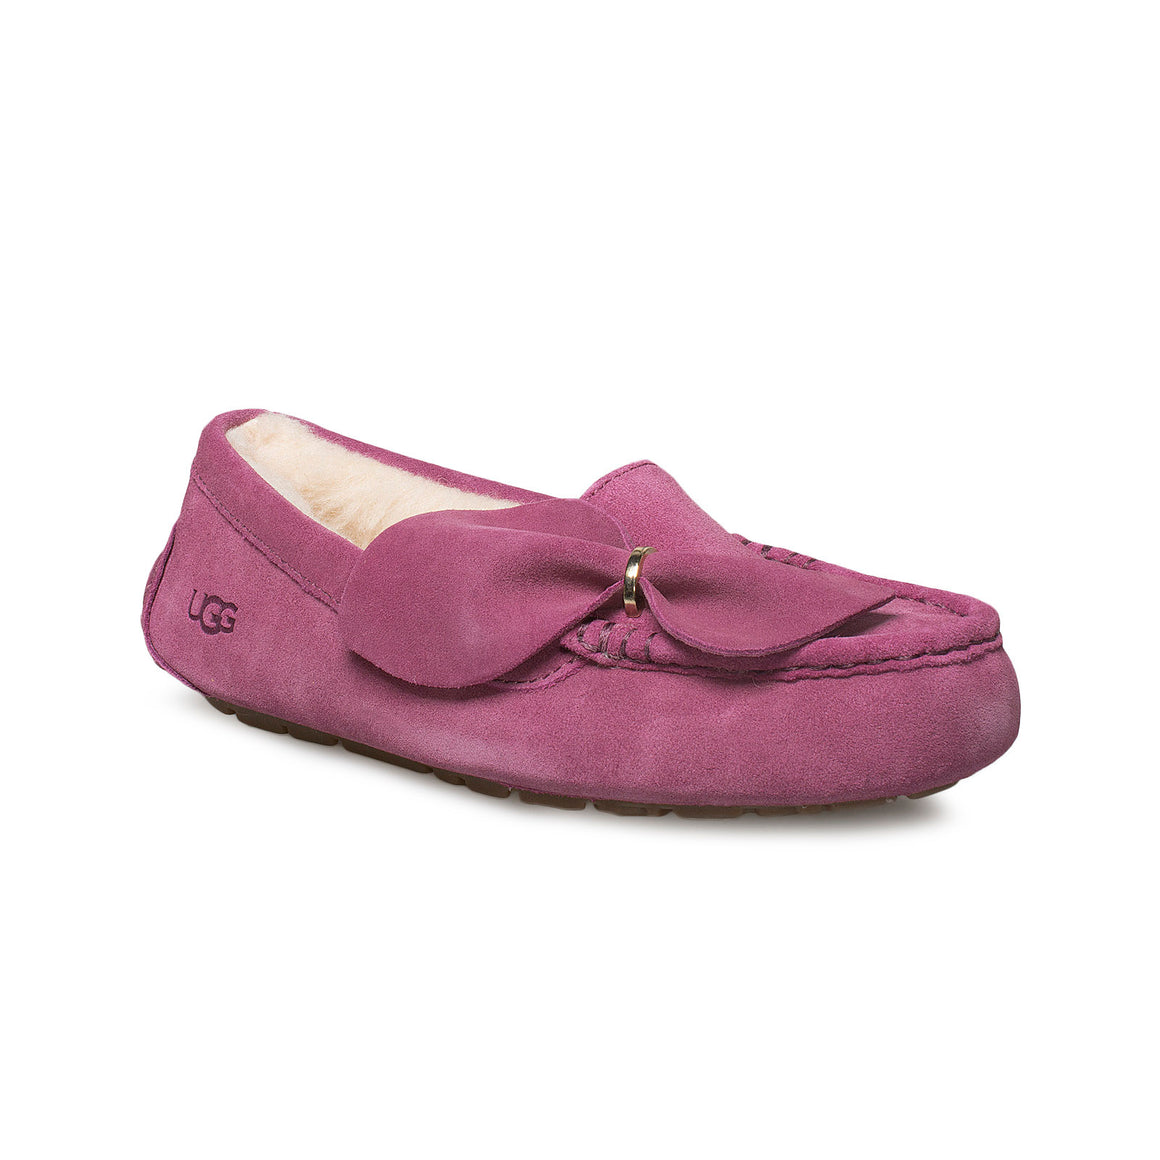 UGG Ansley Twist Bougainvillea Slippers - Women's